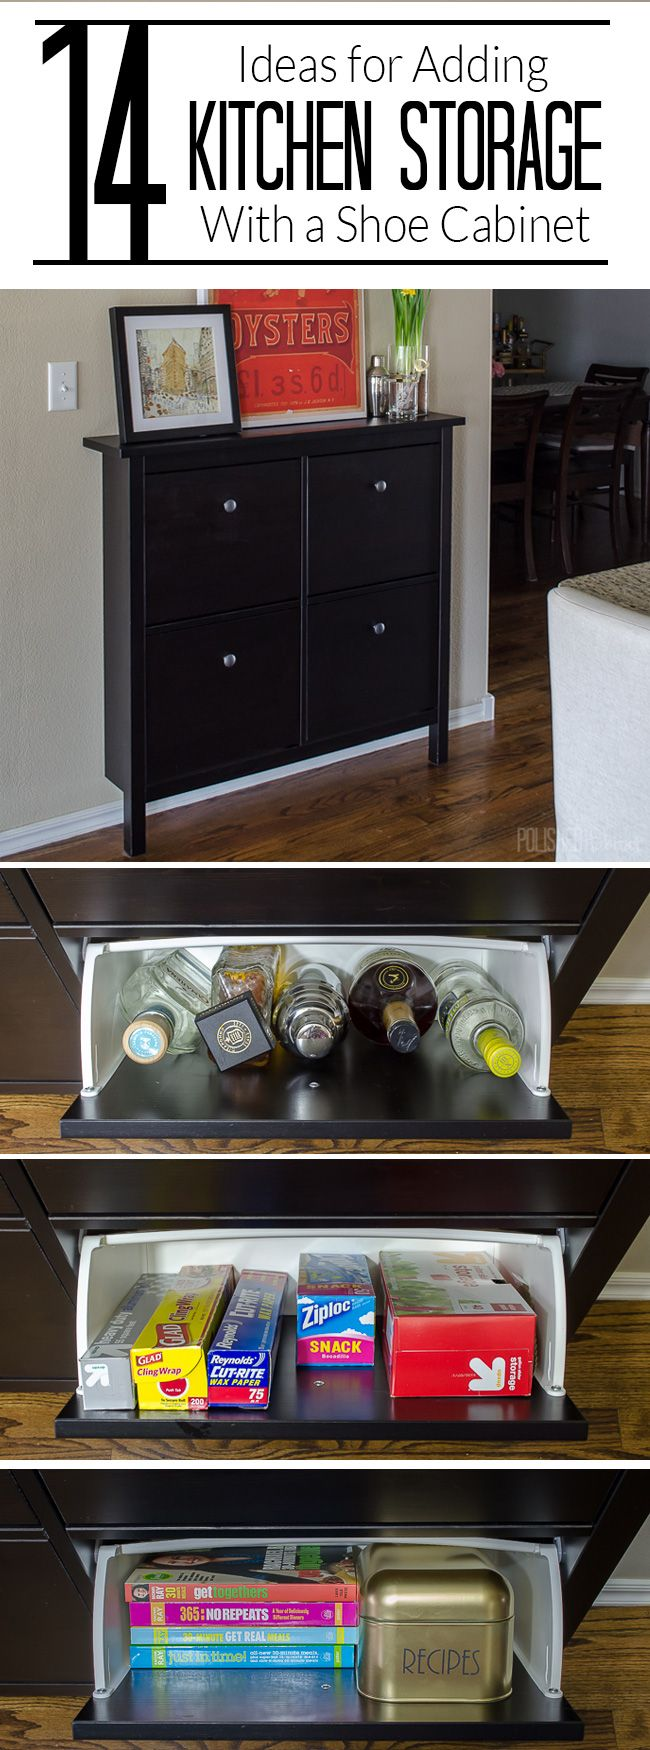 Best 25+ Ikea storage ideas on Pinterest | Ikea, Ikea shoe and ...